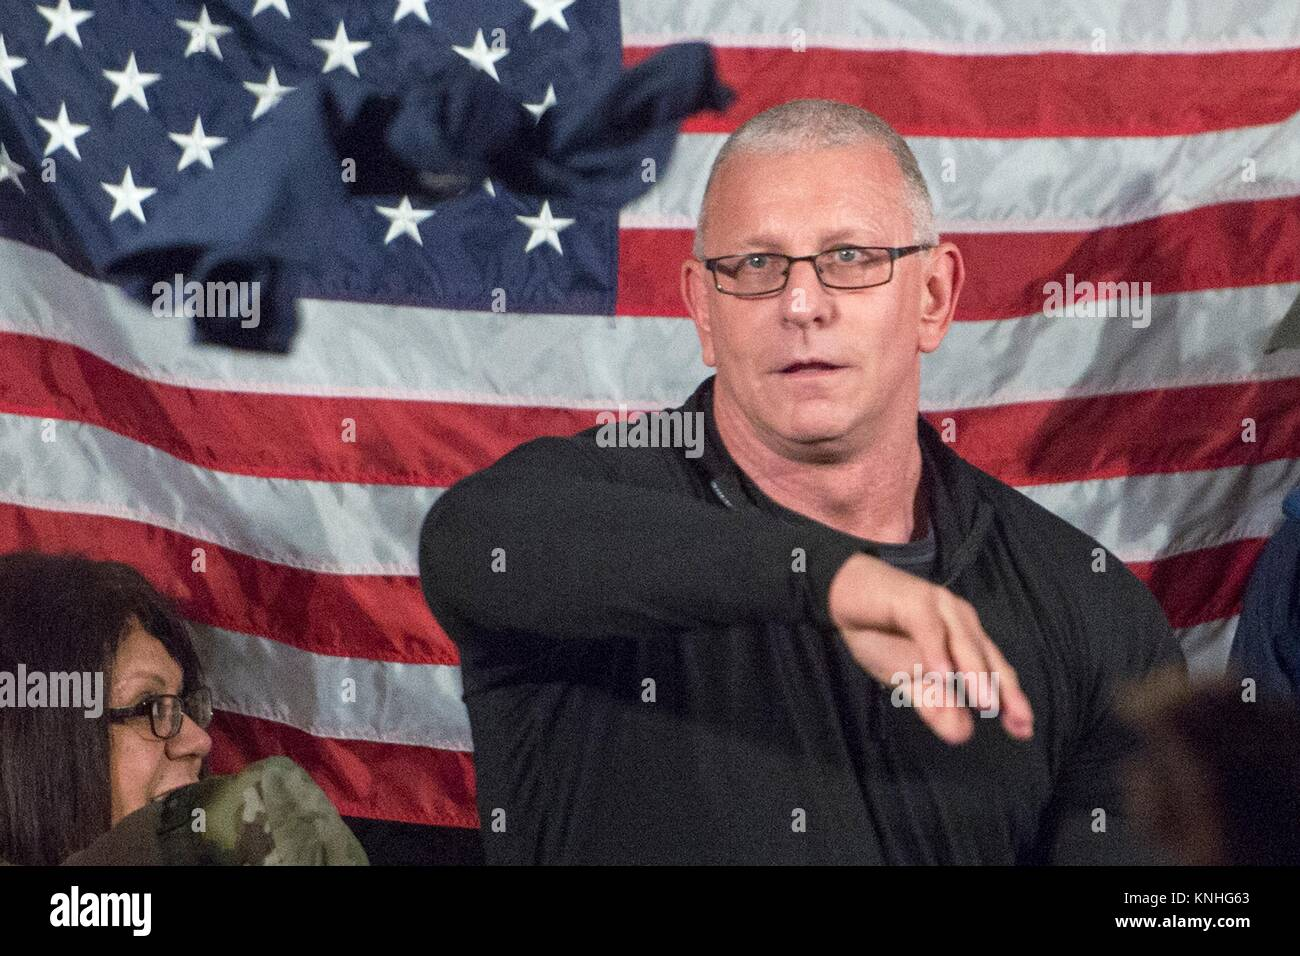 Celebrity chef Robert Irvine speaks to U.S. soldiers during the CJCS USO Holiday Tour December 25, 2016 in Iraq. - Stock Image